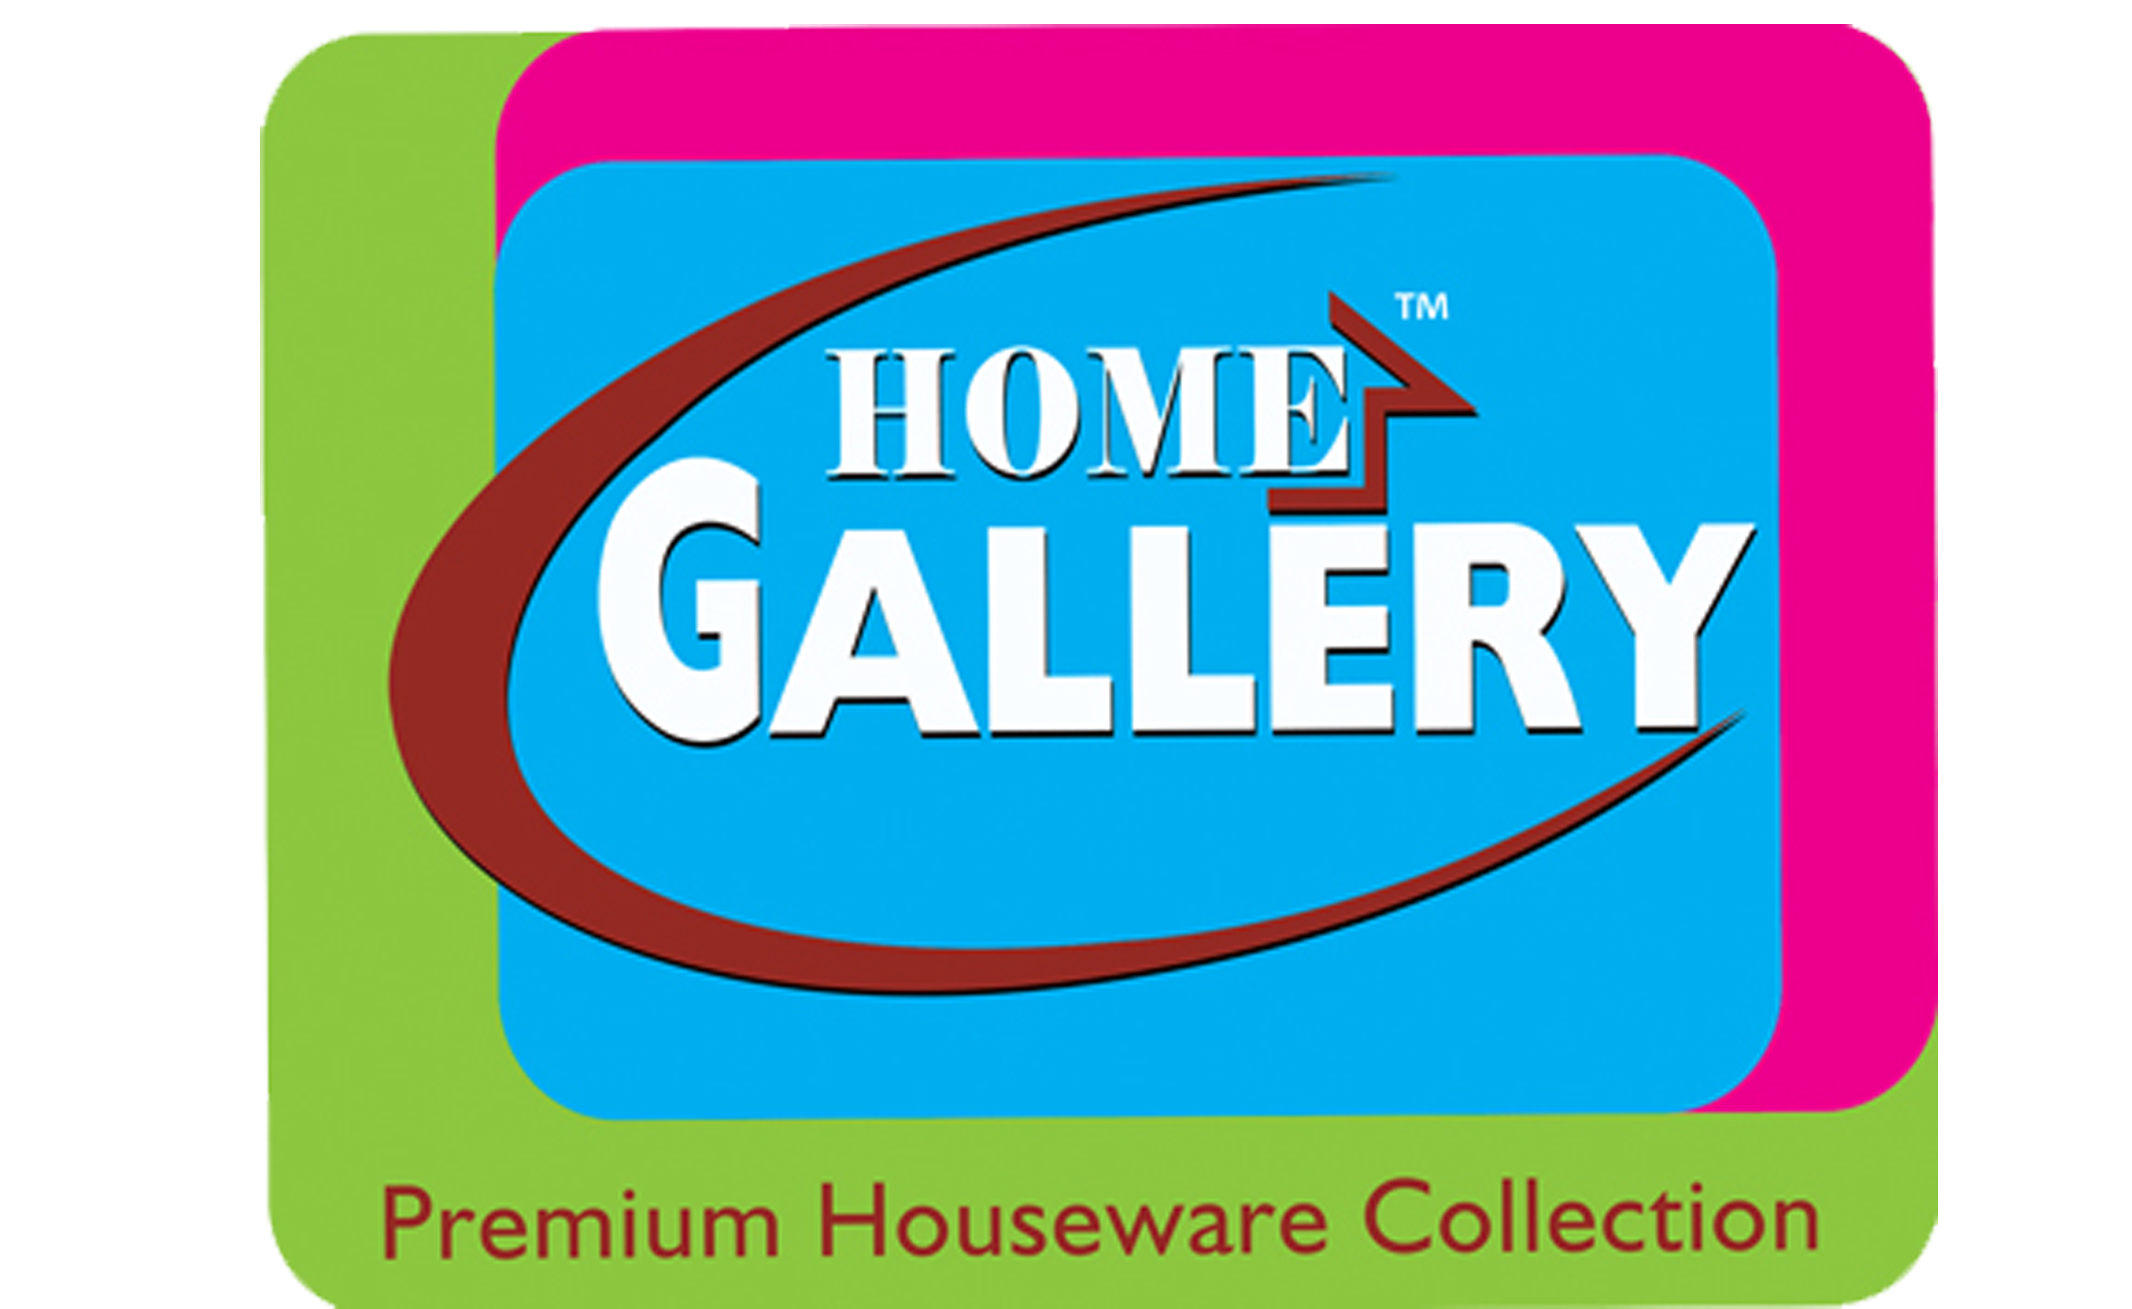 Home Gallery Brands